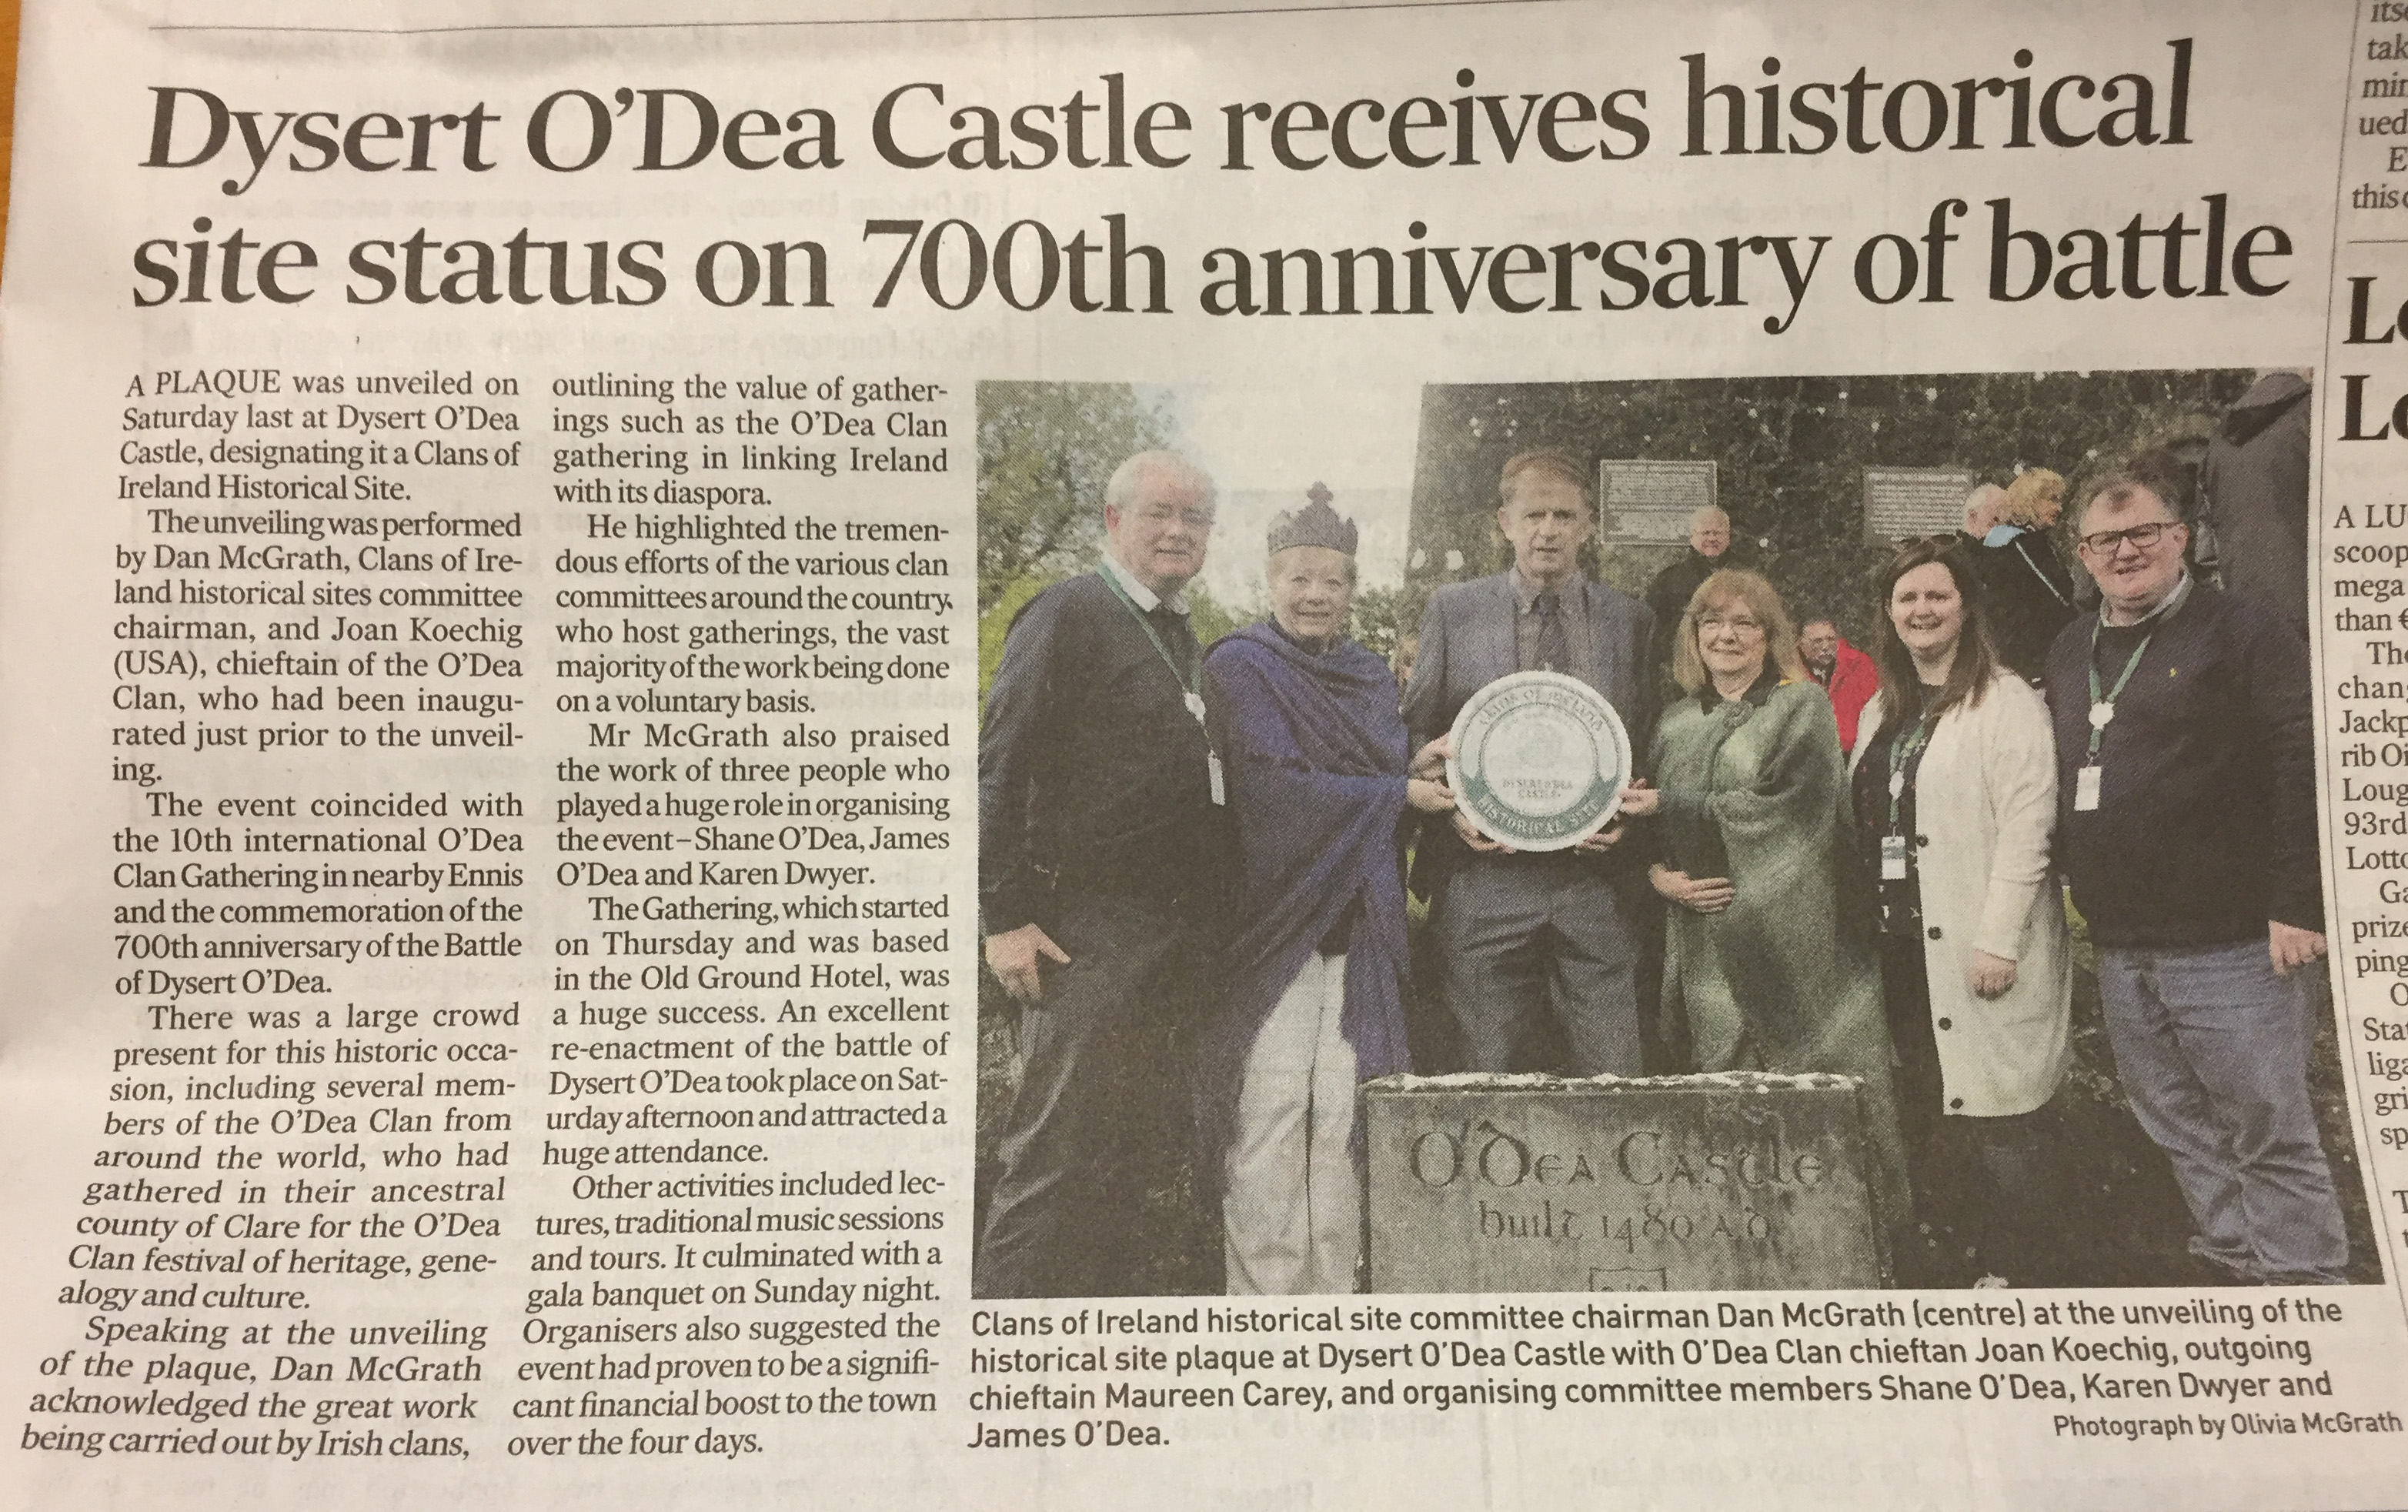 Dysert O'Dea Castle Receives Historical Site Status on 700th Anniversary of Battle